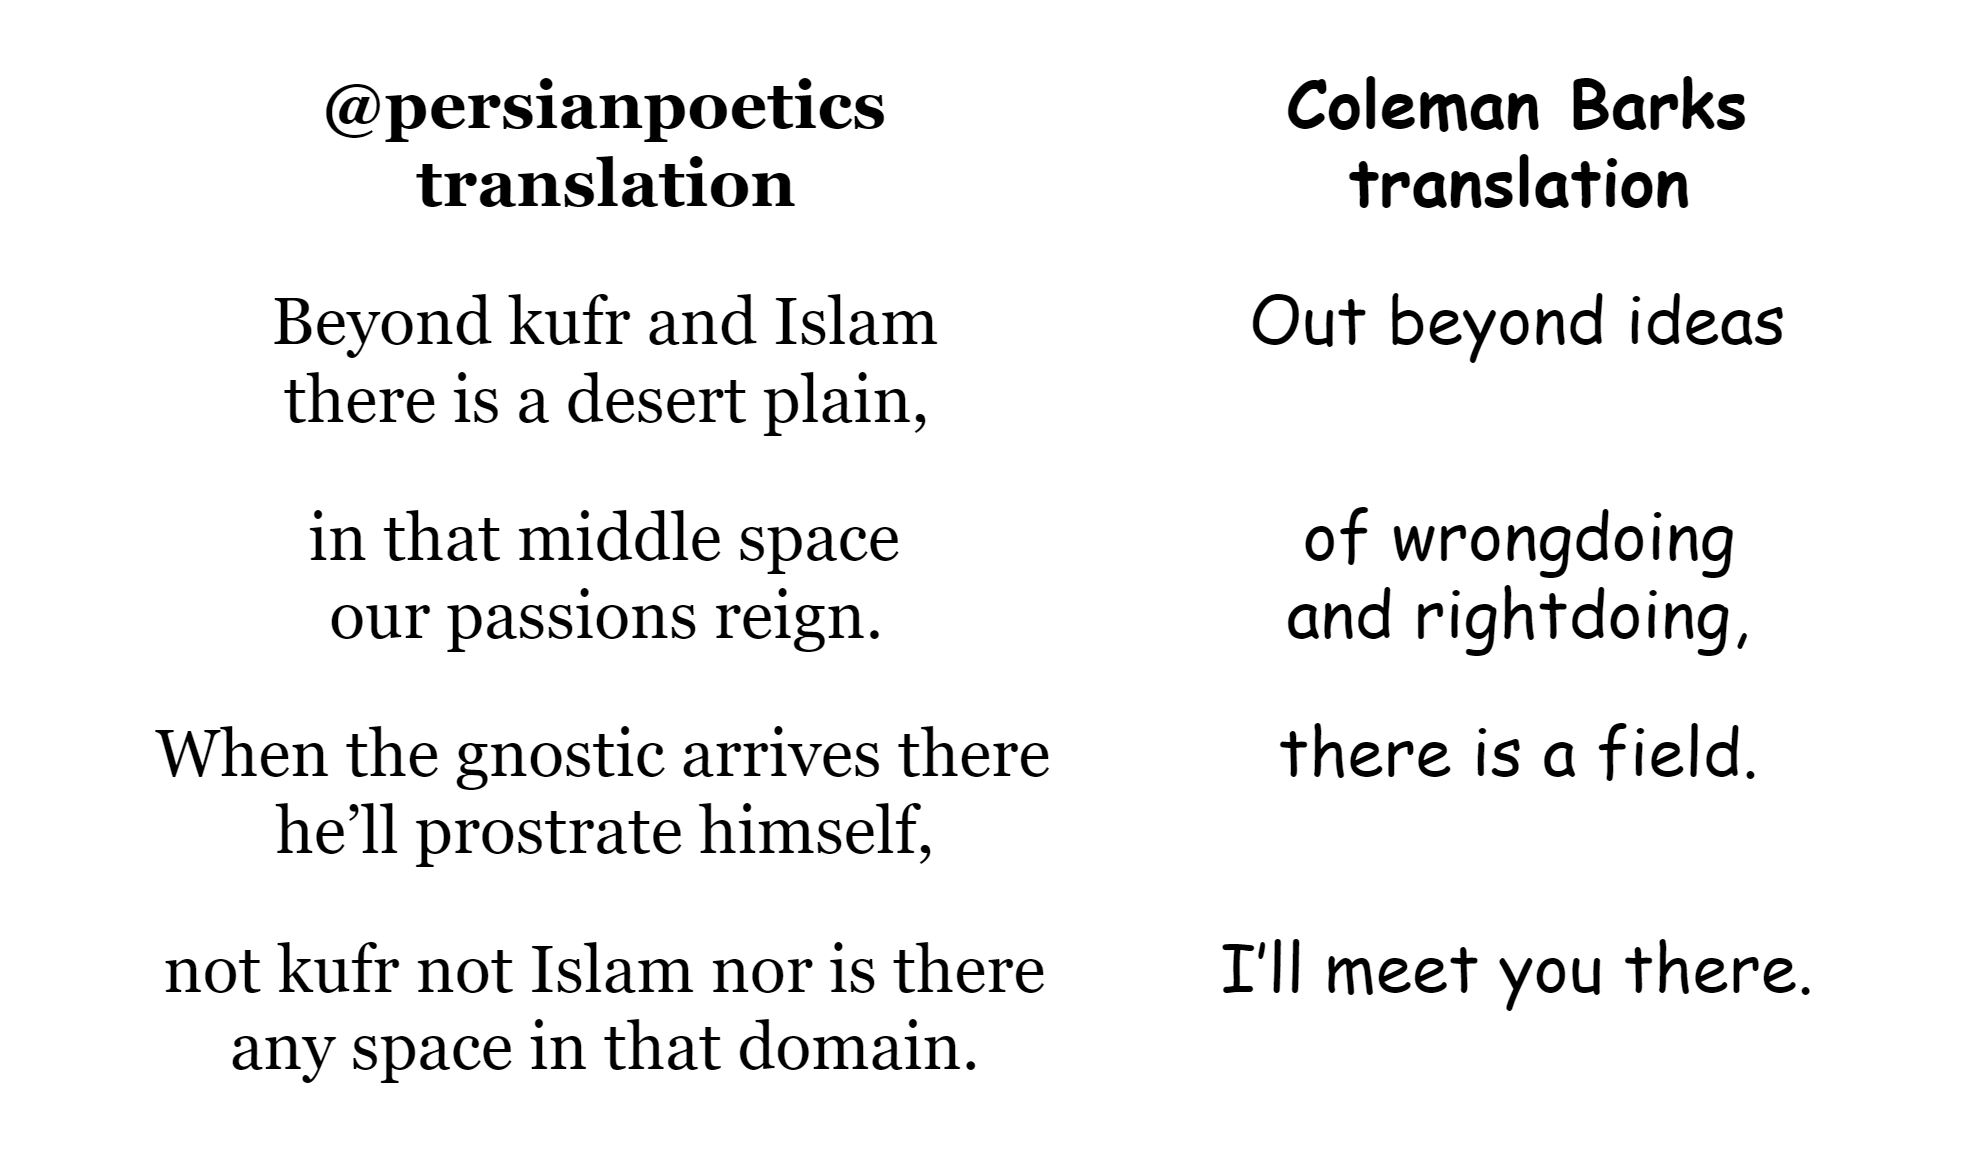 A post comparing the translation of one of Rumi's poems between Coleman Barks and Persian Poetics on Twitter